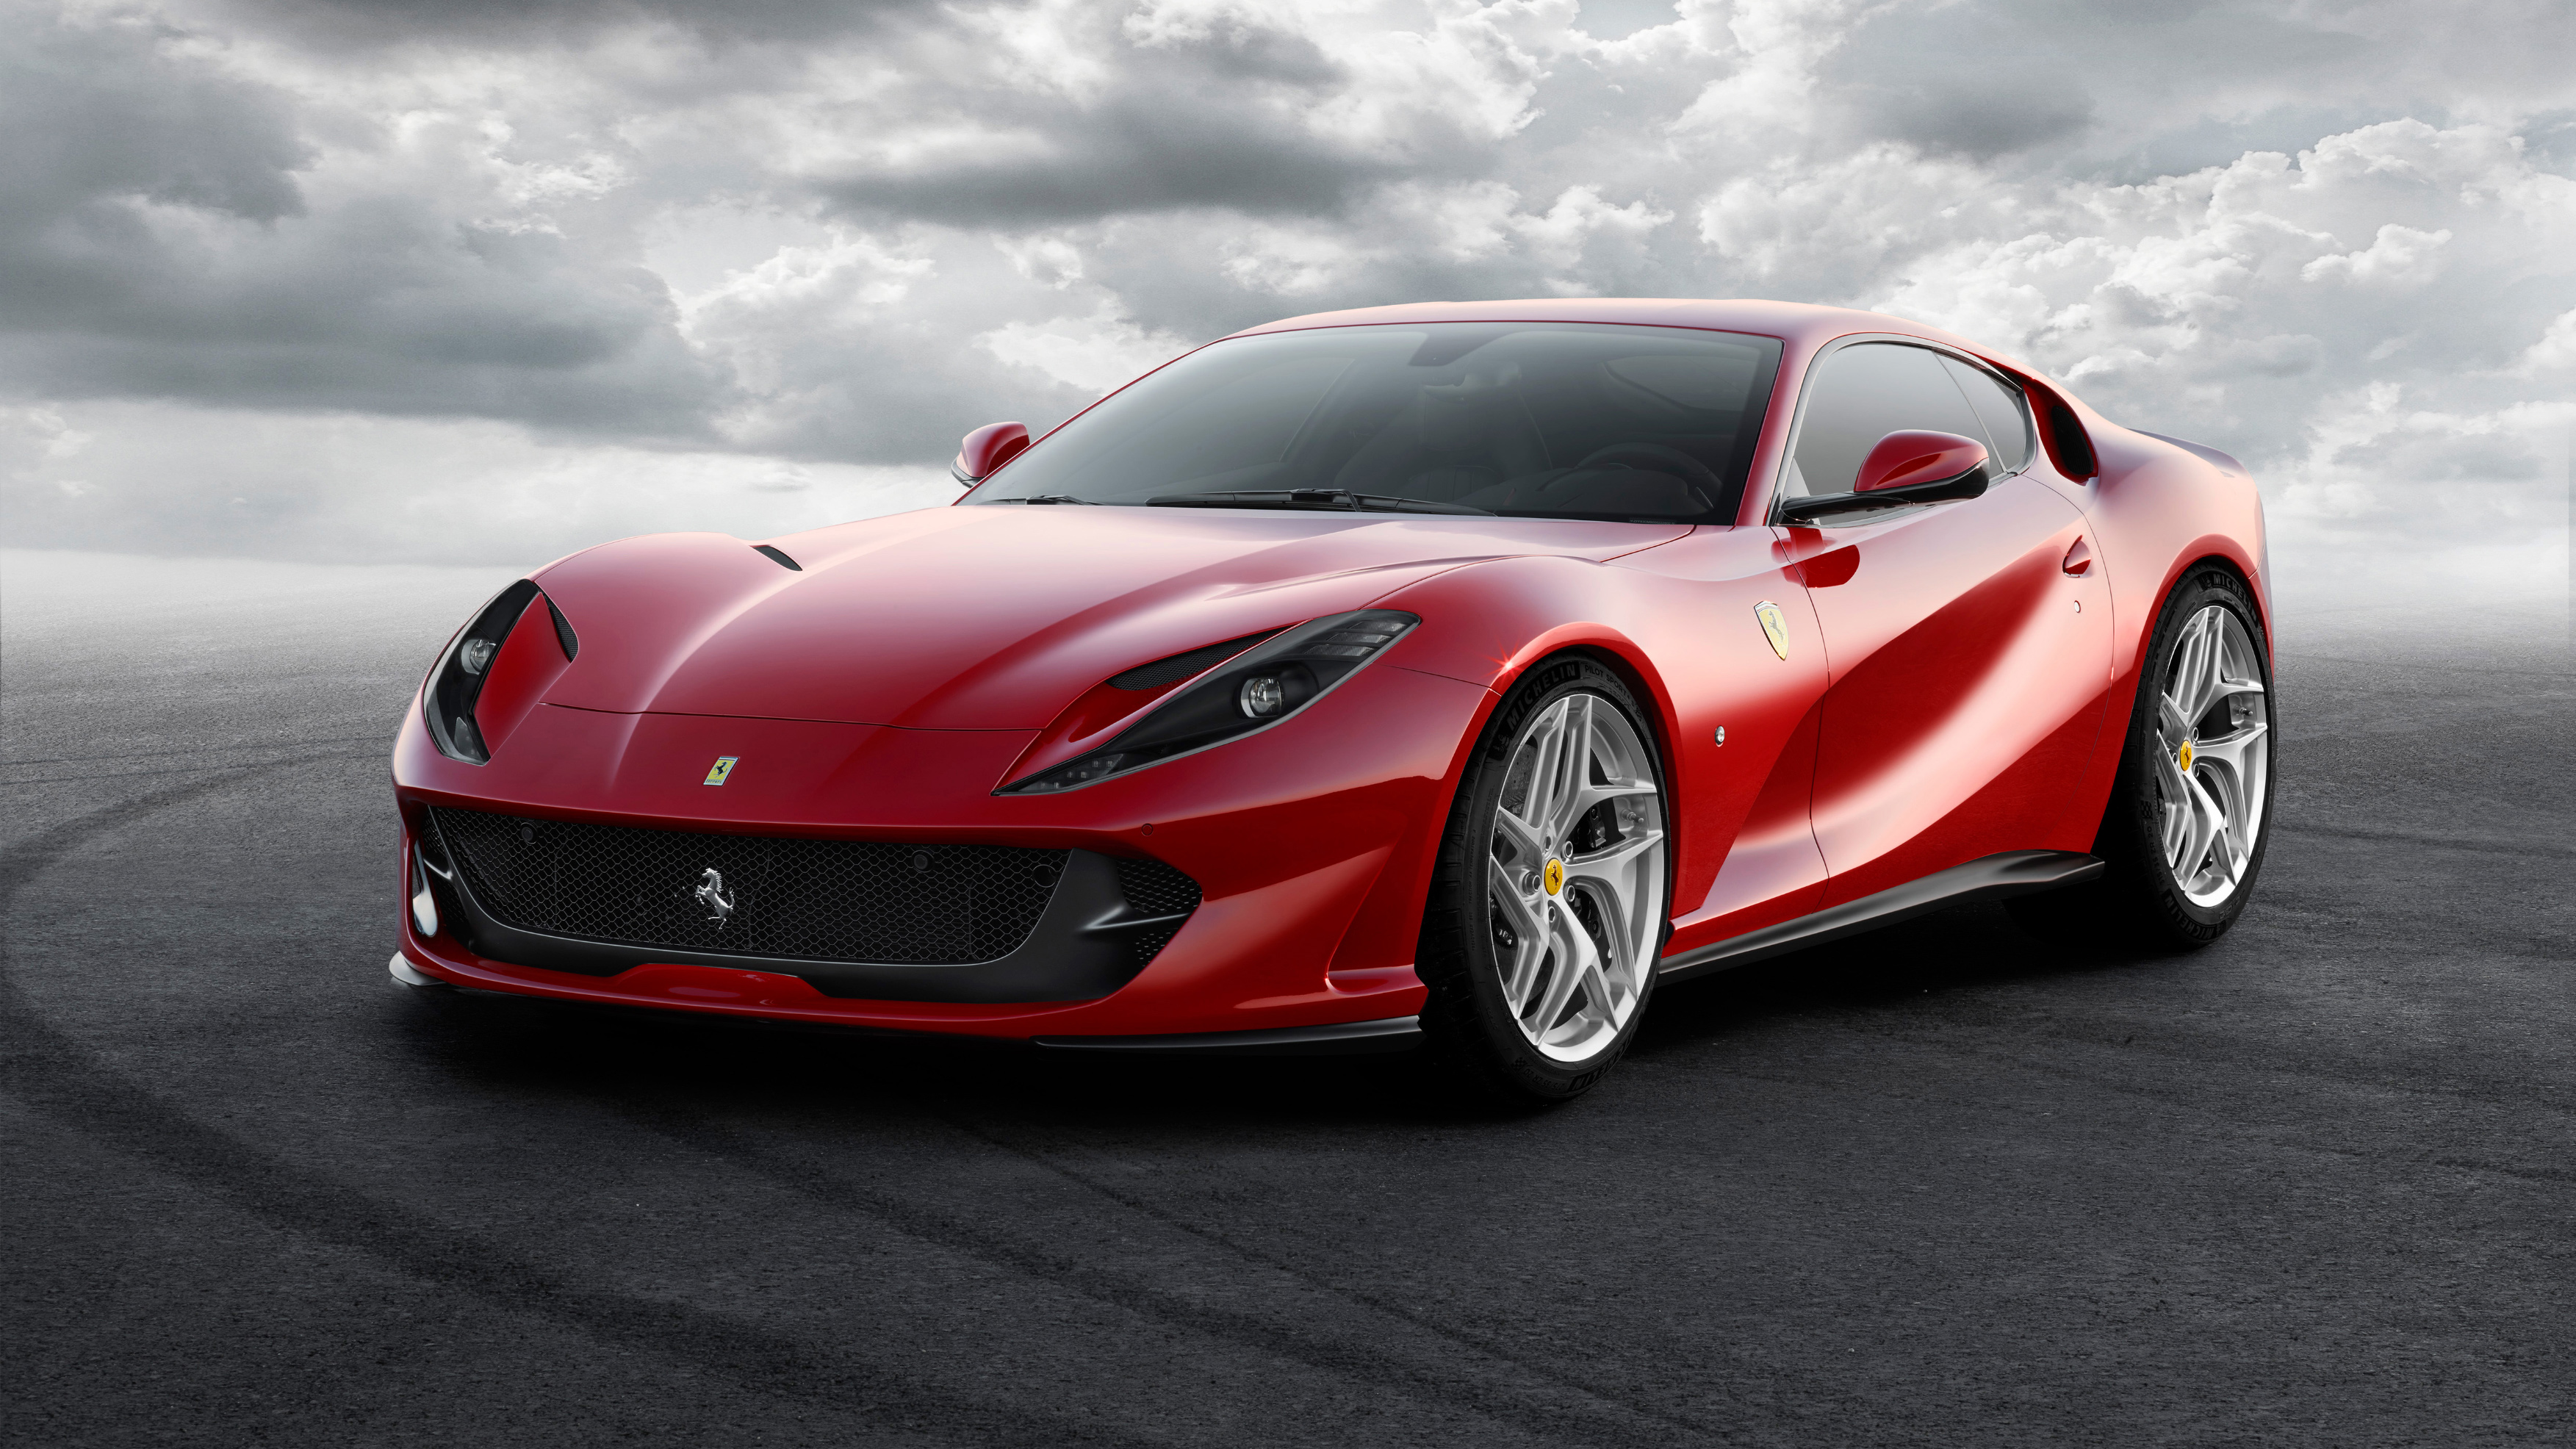 2017 ferrari 812 superfast wallpaper hd car wallpapers id 7563. Black Bedroom Furniture Sets. Home Design Ideas